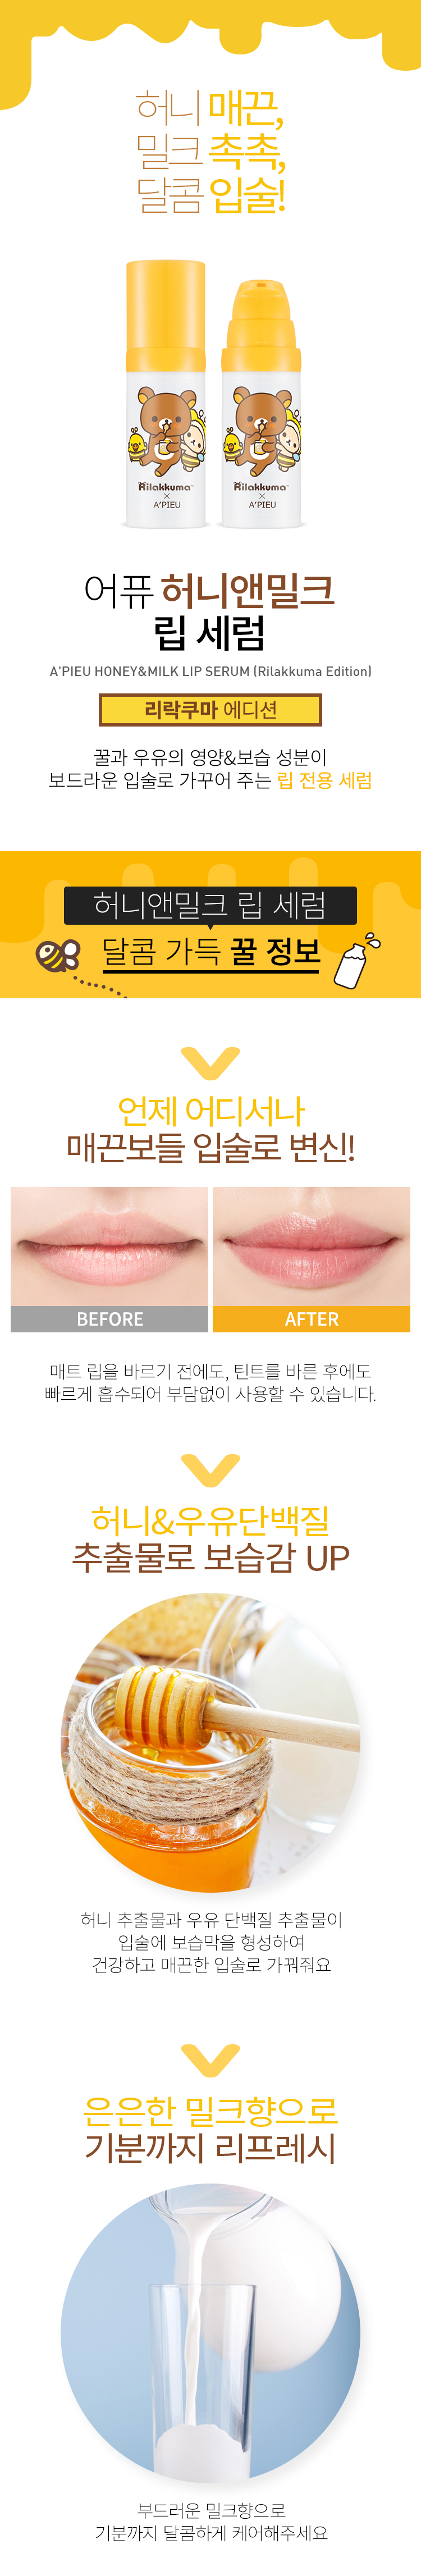 a-pieu-rilakkuma-honey-milk-lip-serum-10g-1.jpg